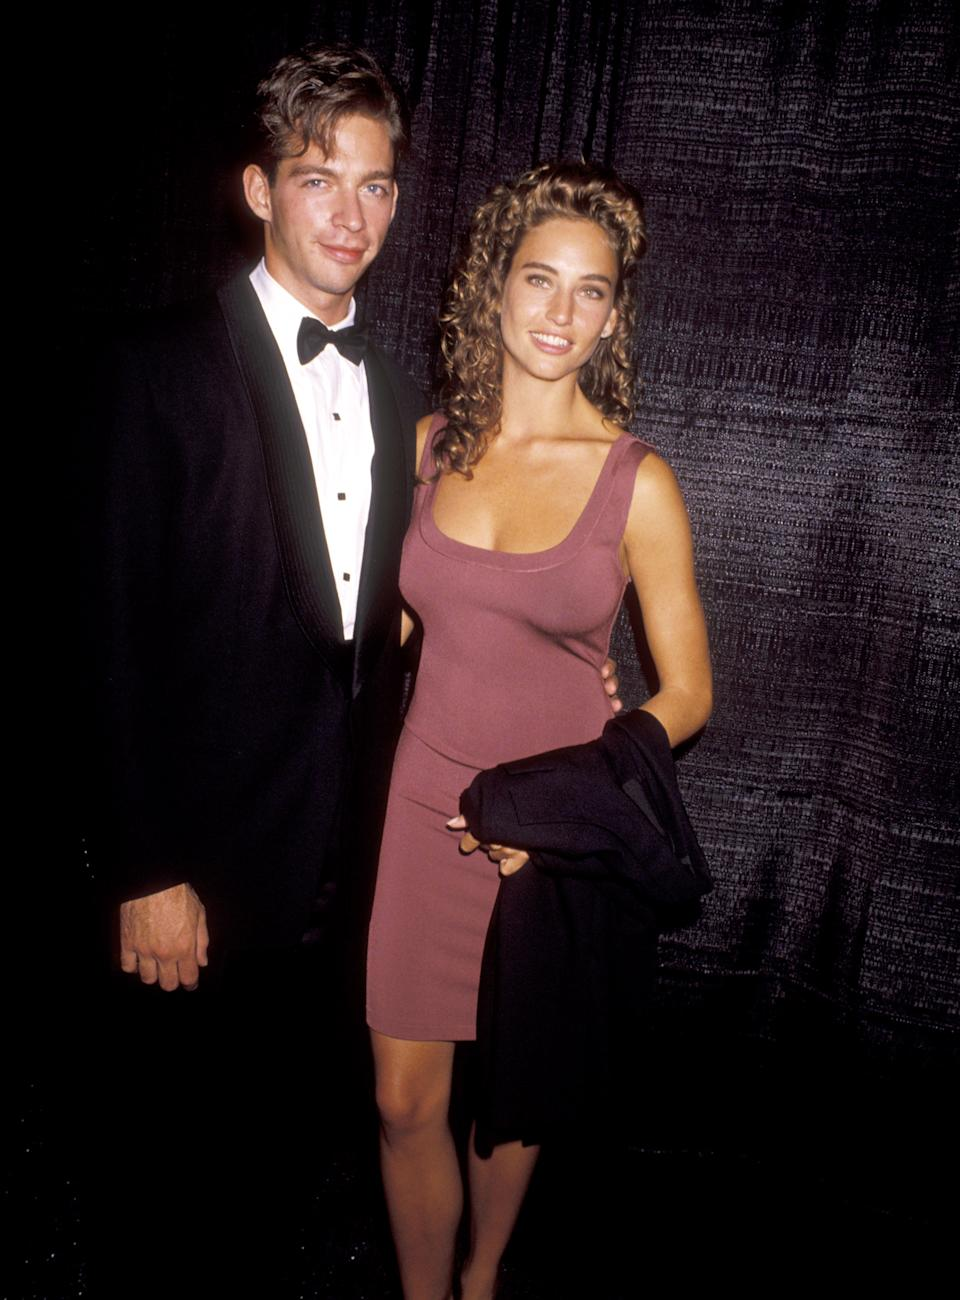 Harry Connick Jr. and Jill Goodacre during Gala Honoring Tommy Mottola - September 12, 1990 at Columbia Pictures Studios in Culver City, California, United States. (Photo by Ron Galella/Ron Galella Collection via Getty Images)